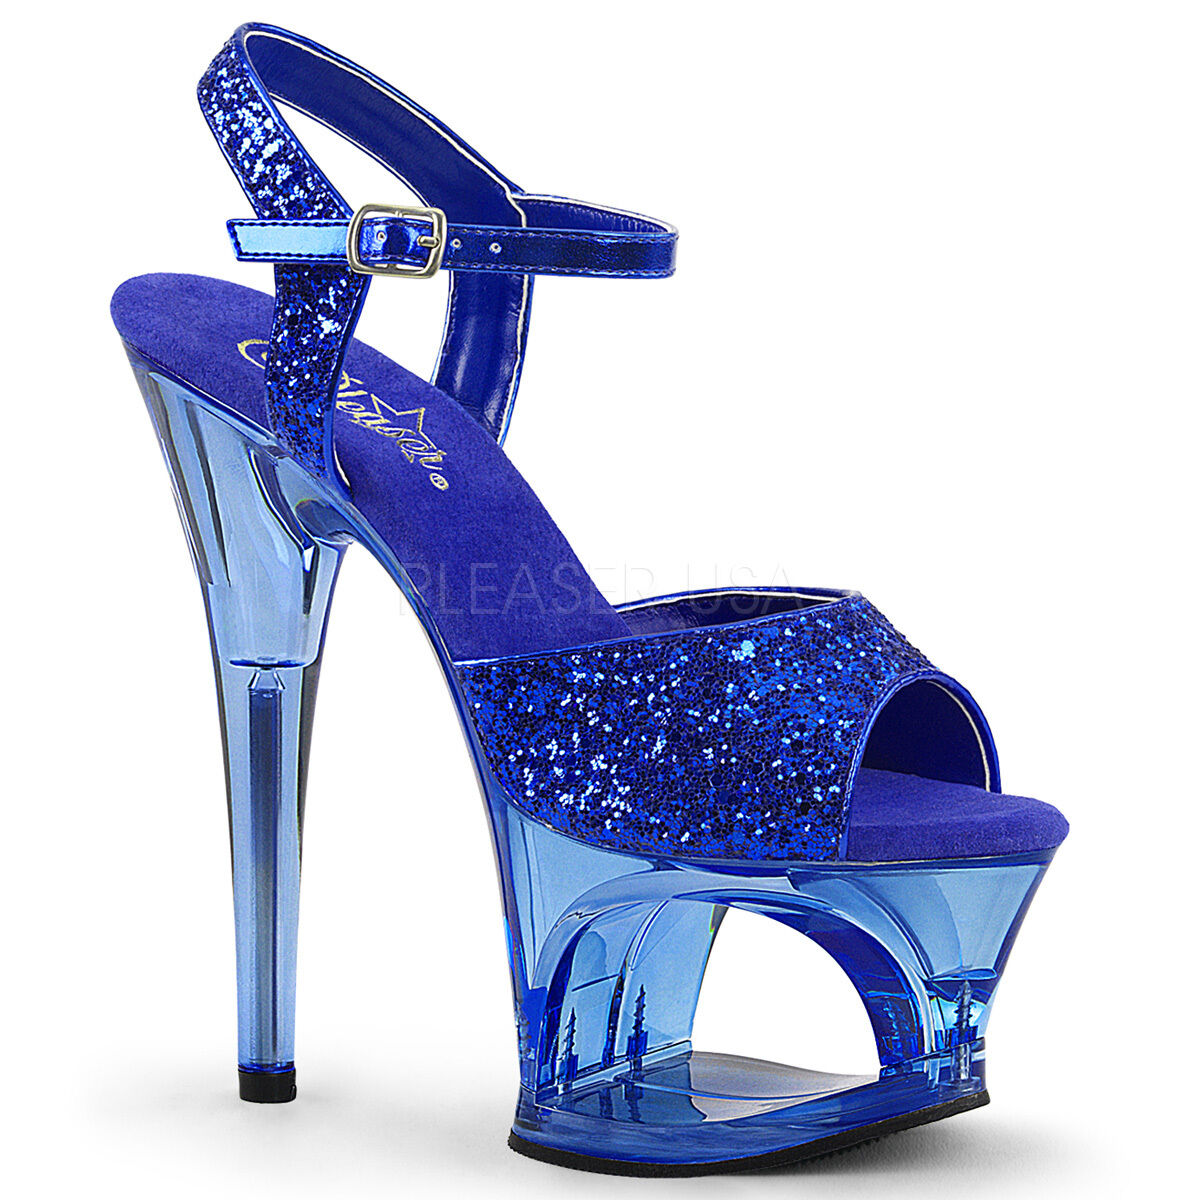 Sexy shoes Cutout Tinted Platform 7  High Stripper Heels bluee Glitter Sandals